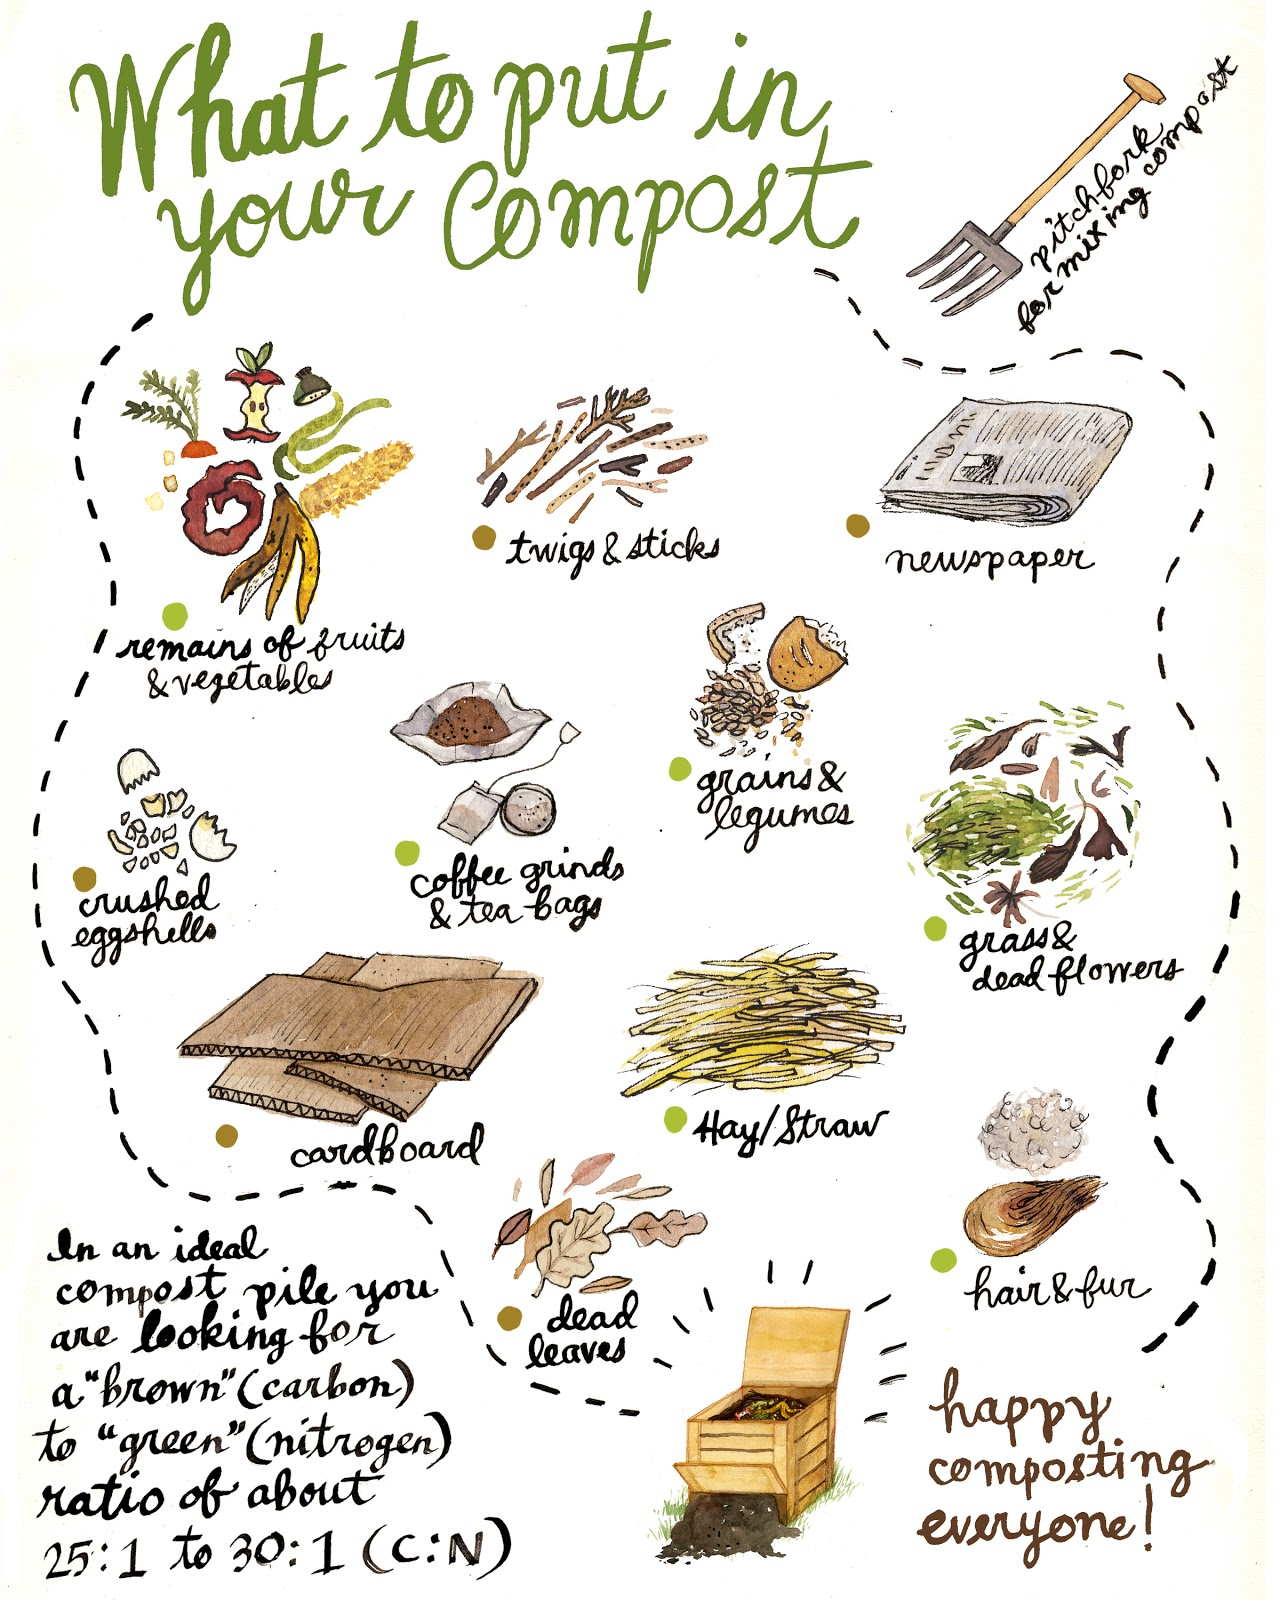 photo relating to Printable Compost List titled Composting Refreshing Air Baltimore